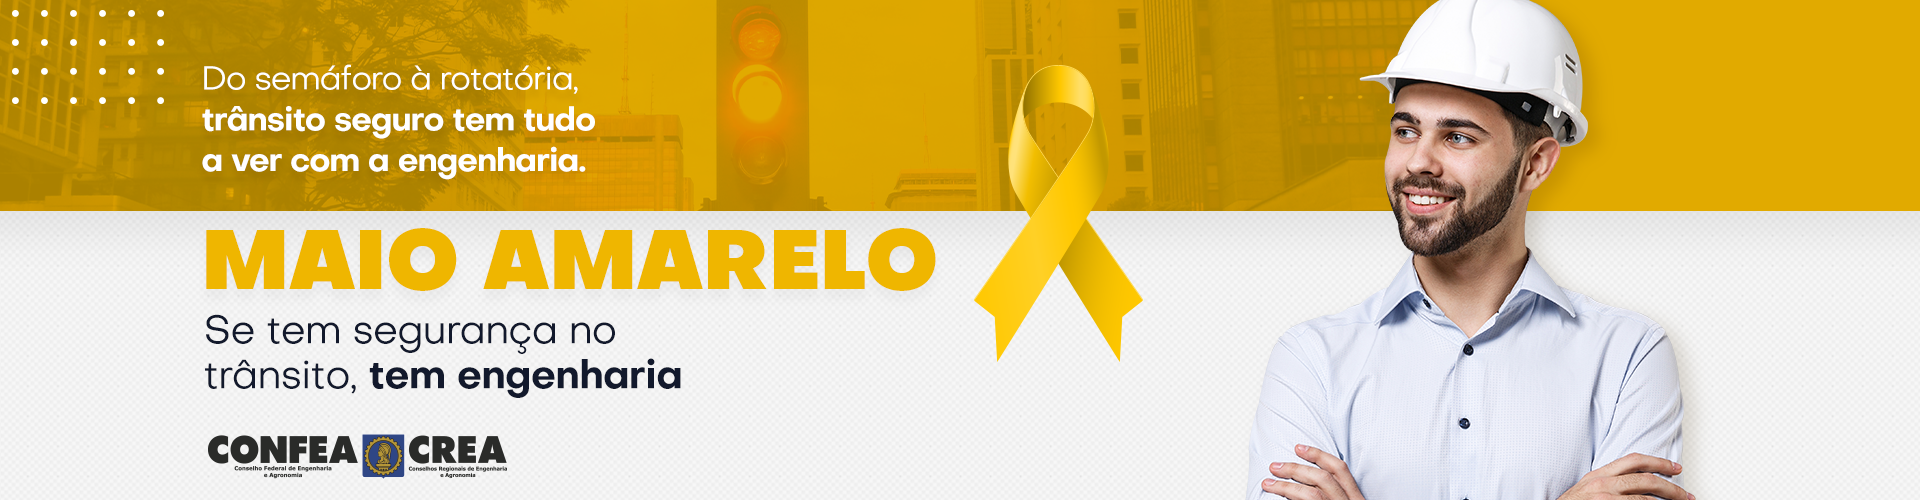 [banner: banner]  - 200421-Confea-Banner-Maio-Amarelo-1.png